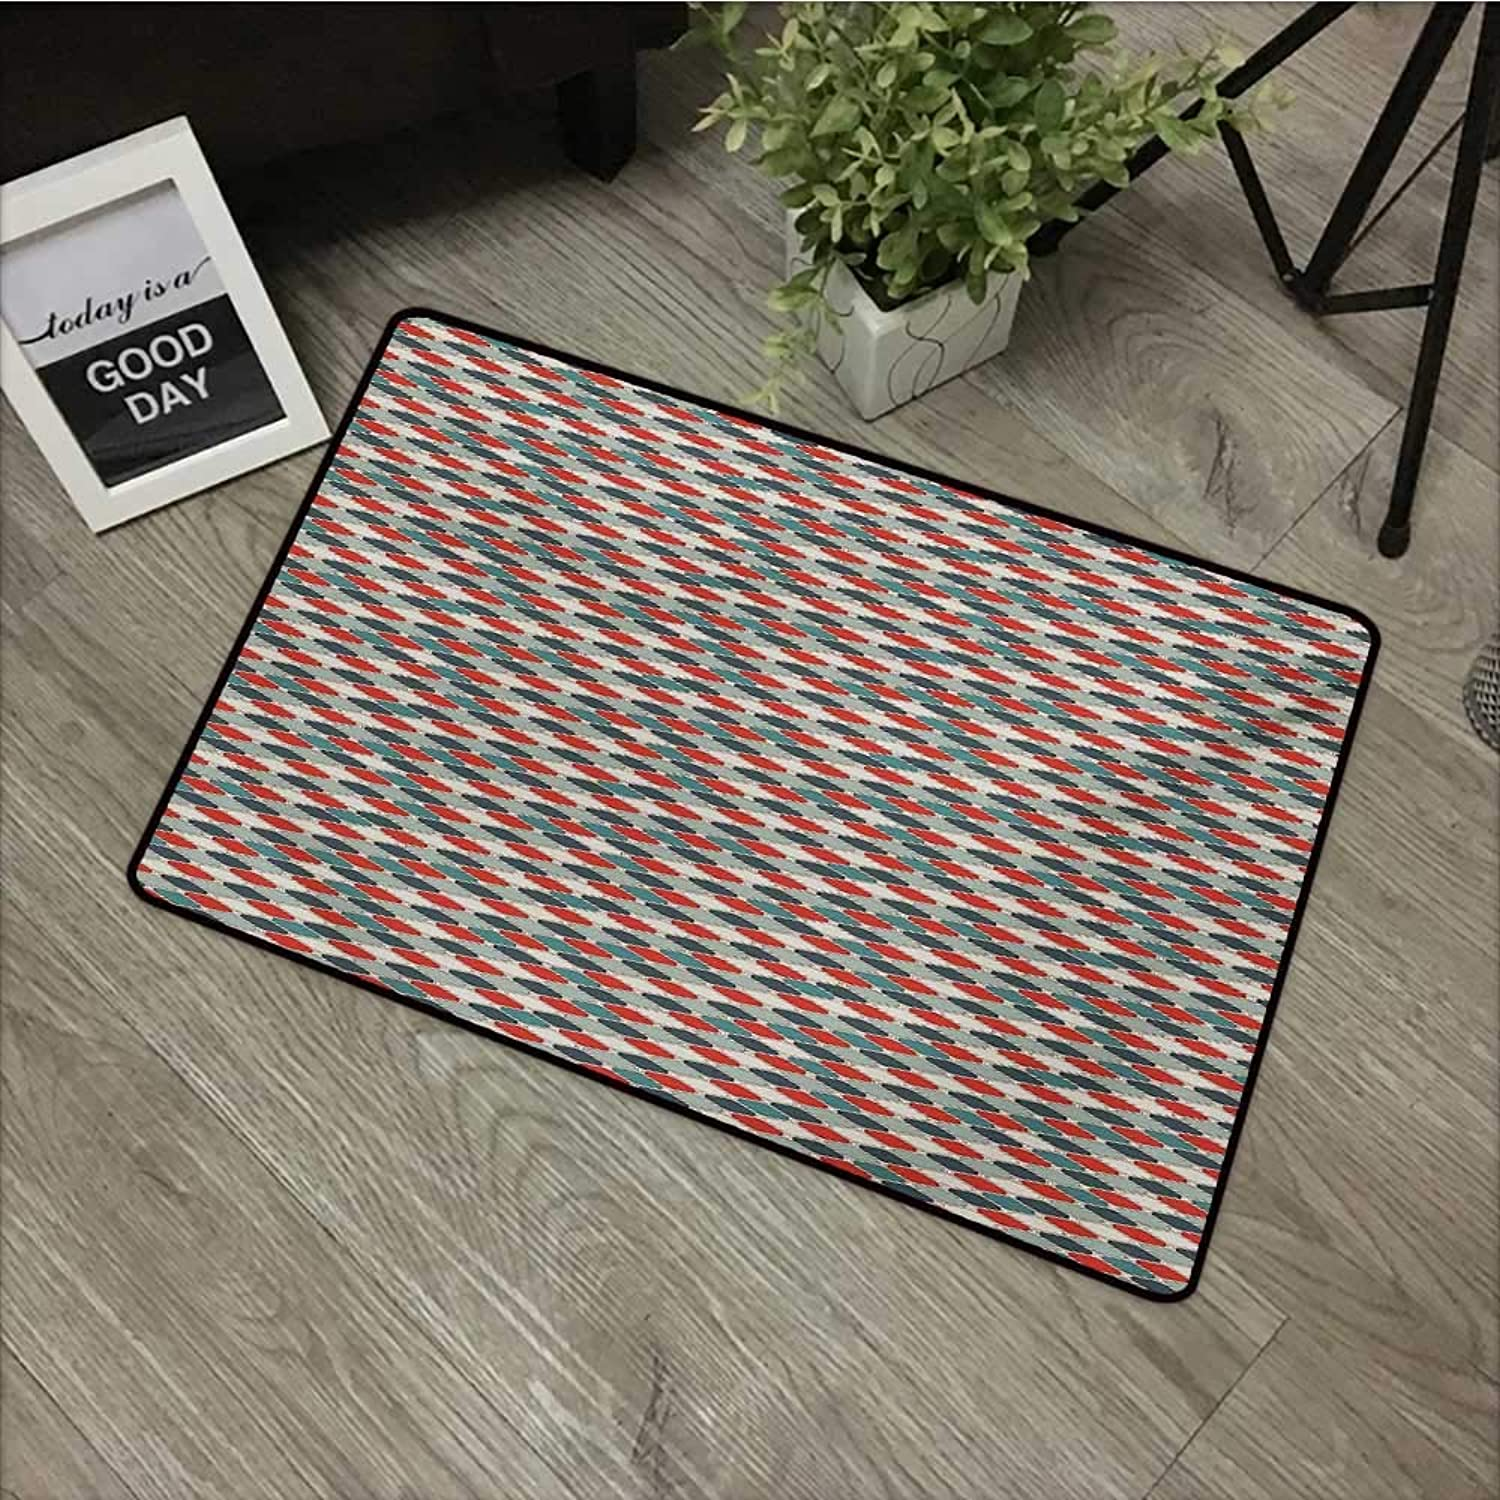 Bathroom Door mat W35 x L47 INCH Retro,Pattern of Mosaic with Geometric Design Old Fashioned Lattice Style Octagon Tile,Multicolor Non-Slip, with Non-Slip Backing,Non-Slip Door Mat Carpet